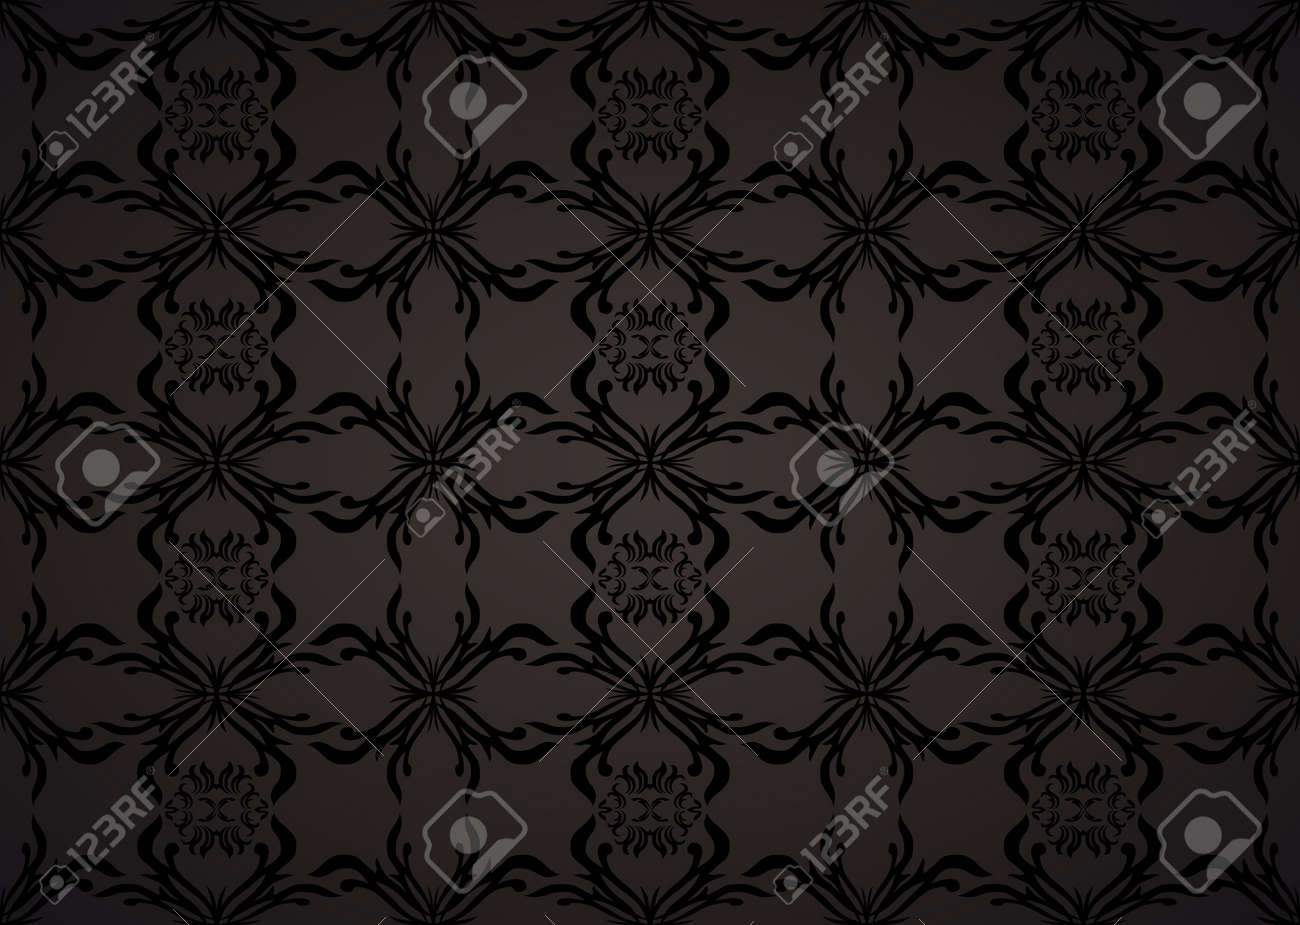 Gothic Seamless Background Wallpaper In Balck And Grey With Floral Theme Stock Photo